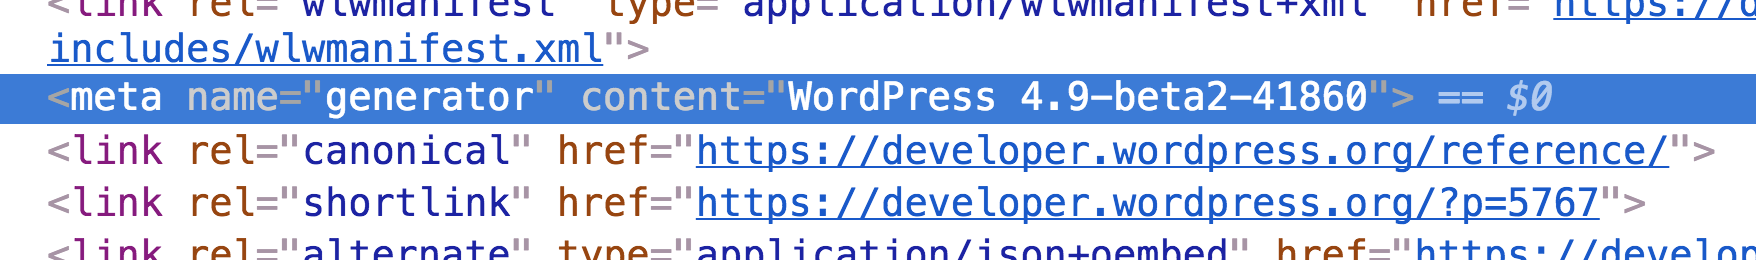 Screenshot of meta generator tag showing WordPress version